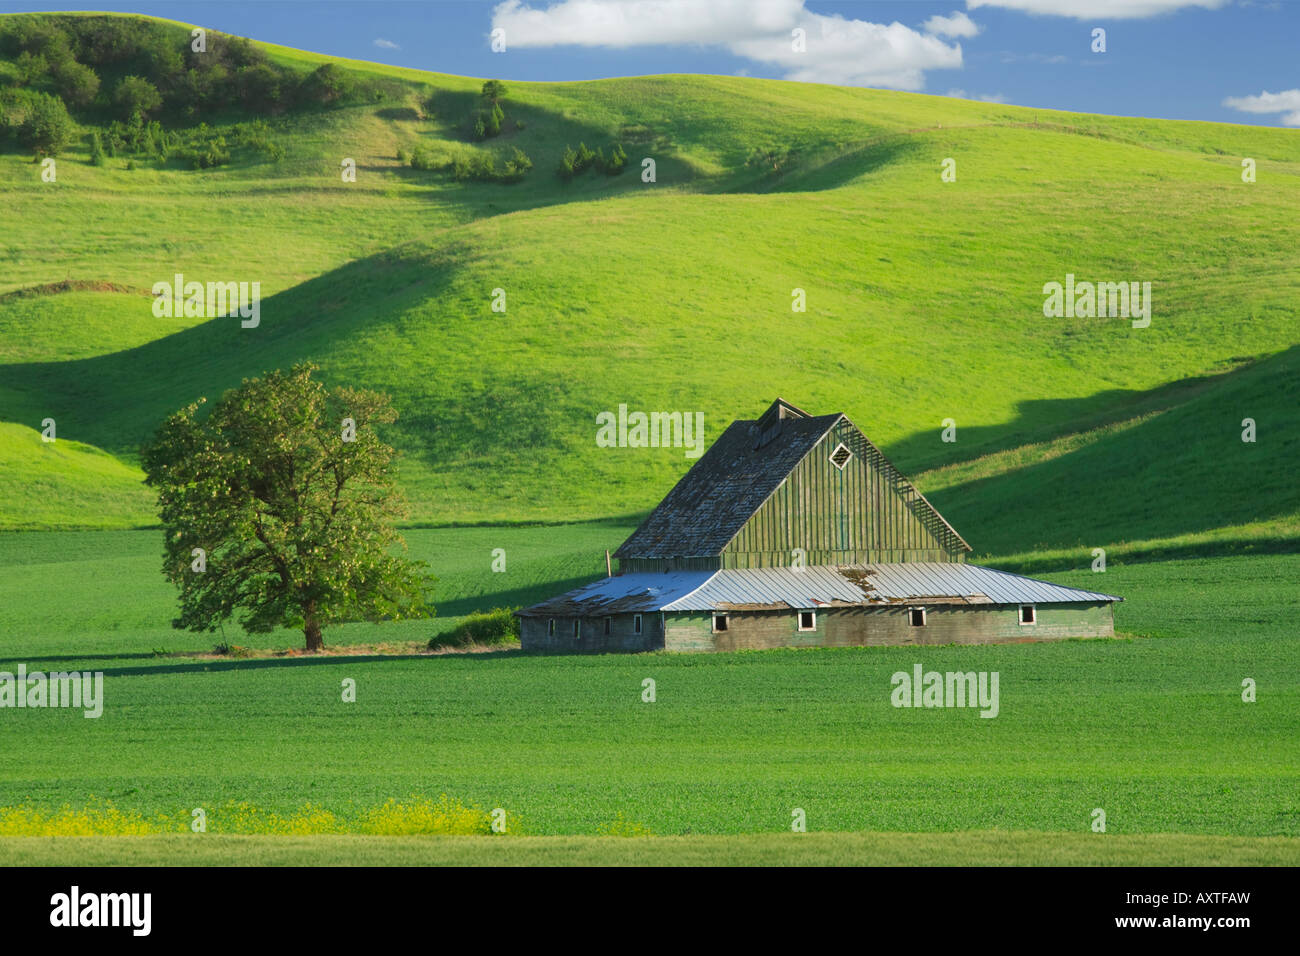 Barn in Palouse area of eastern Washington state - Stock Image